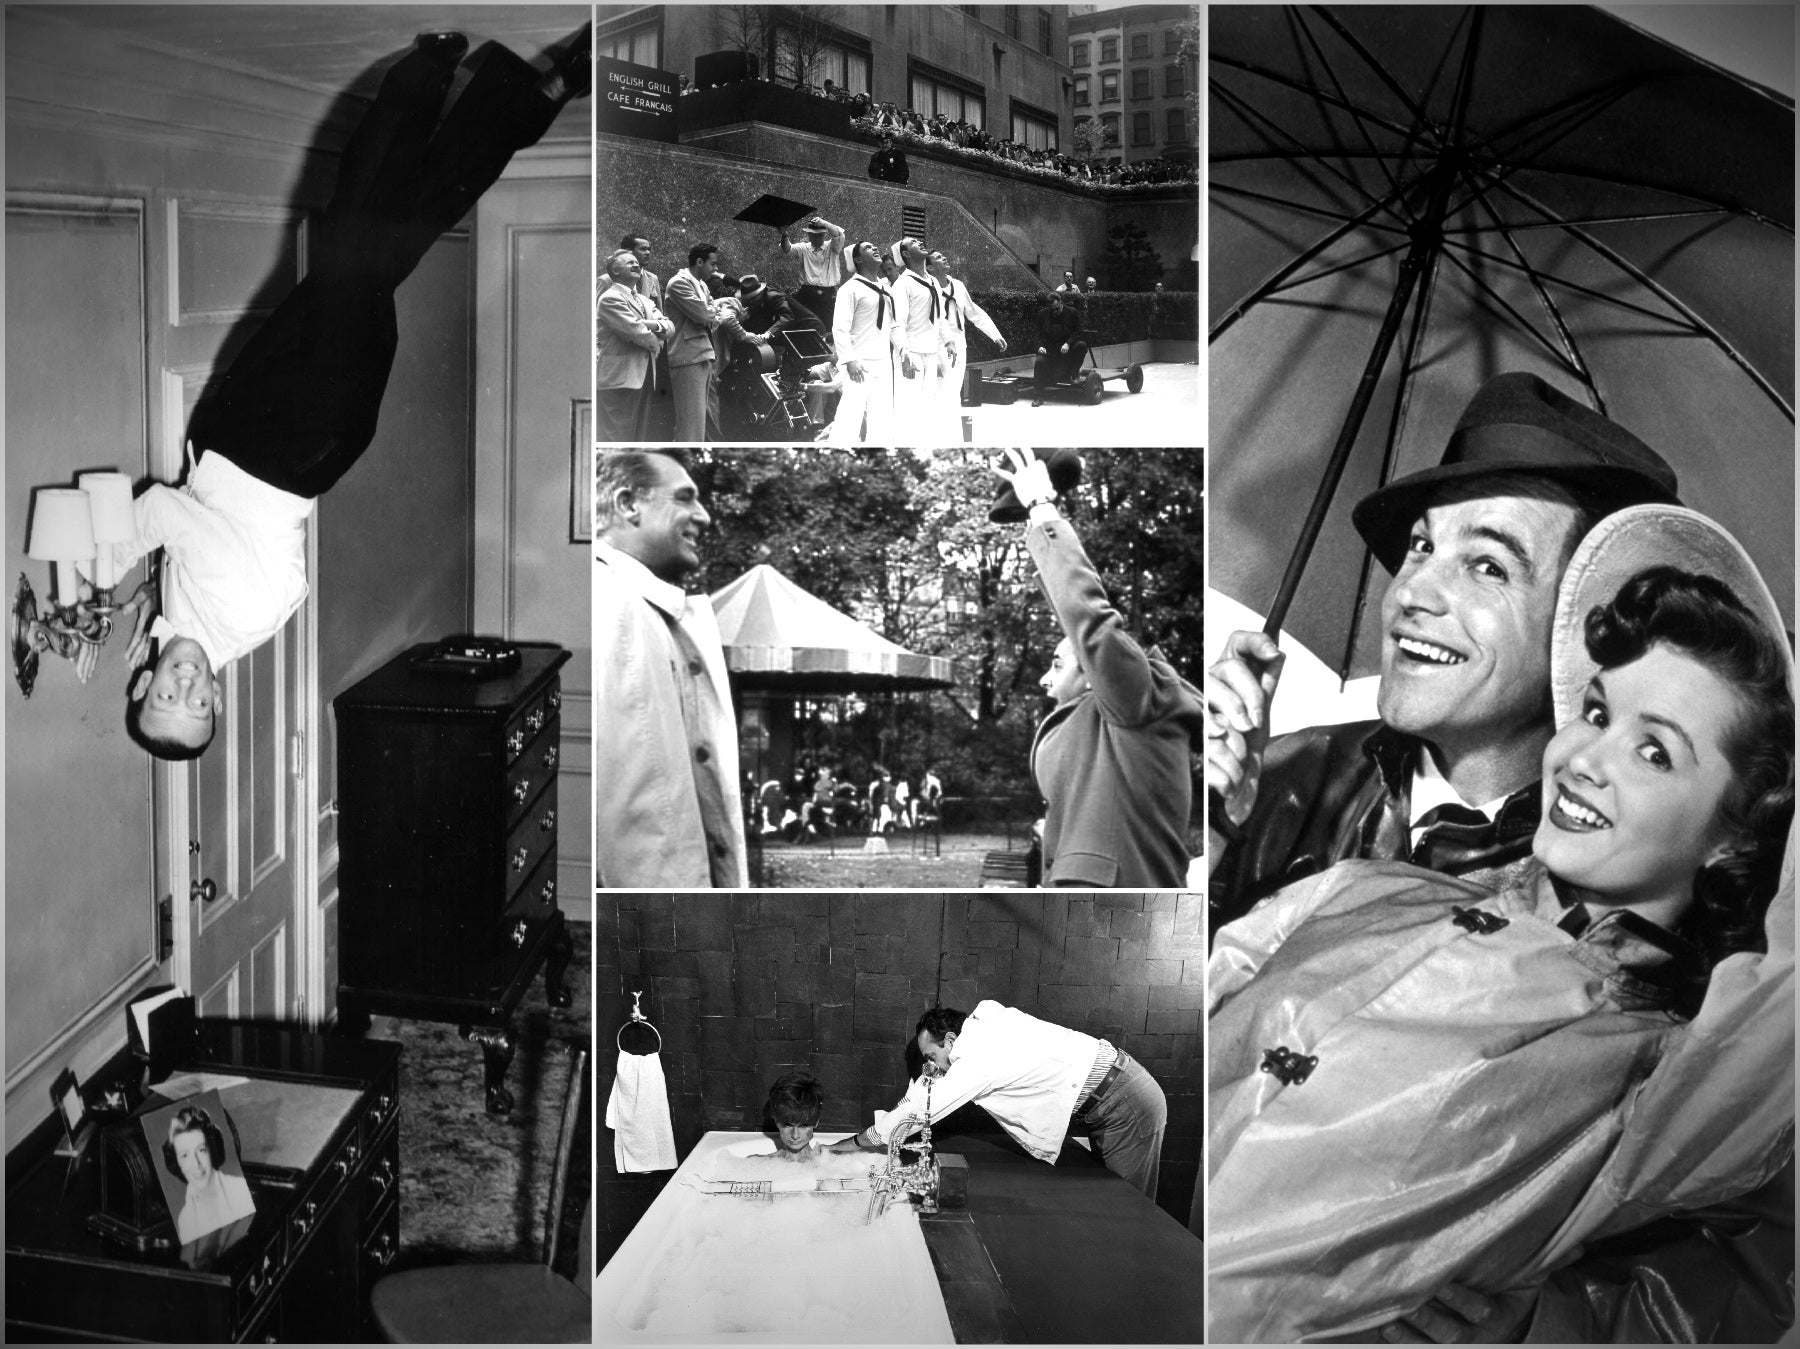 Filmes directed by Stanley Donen